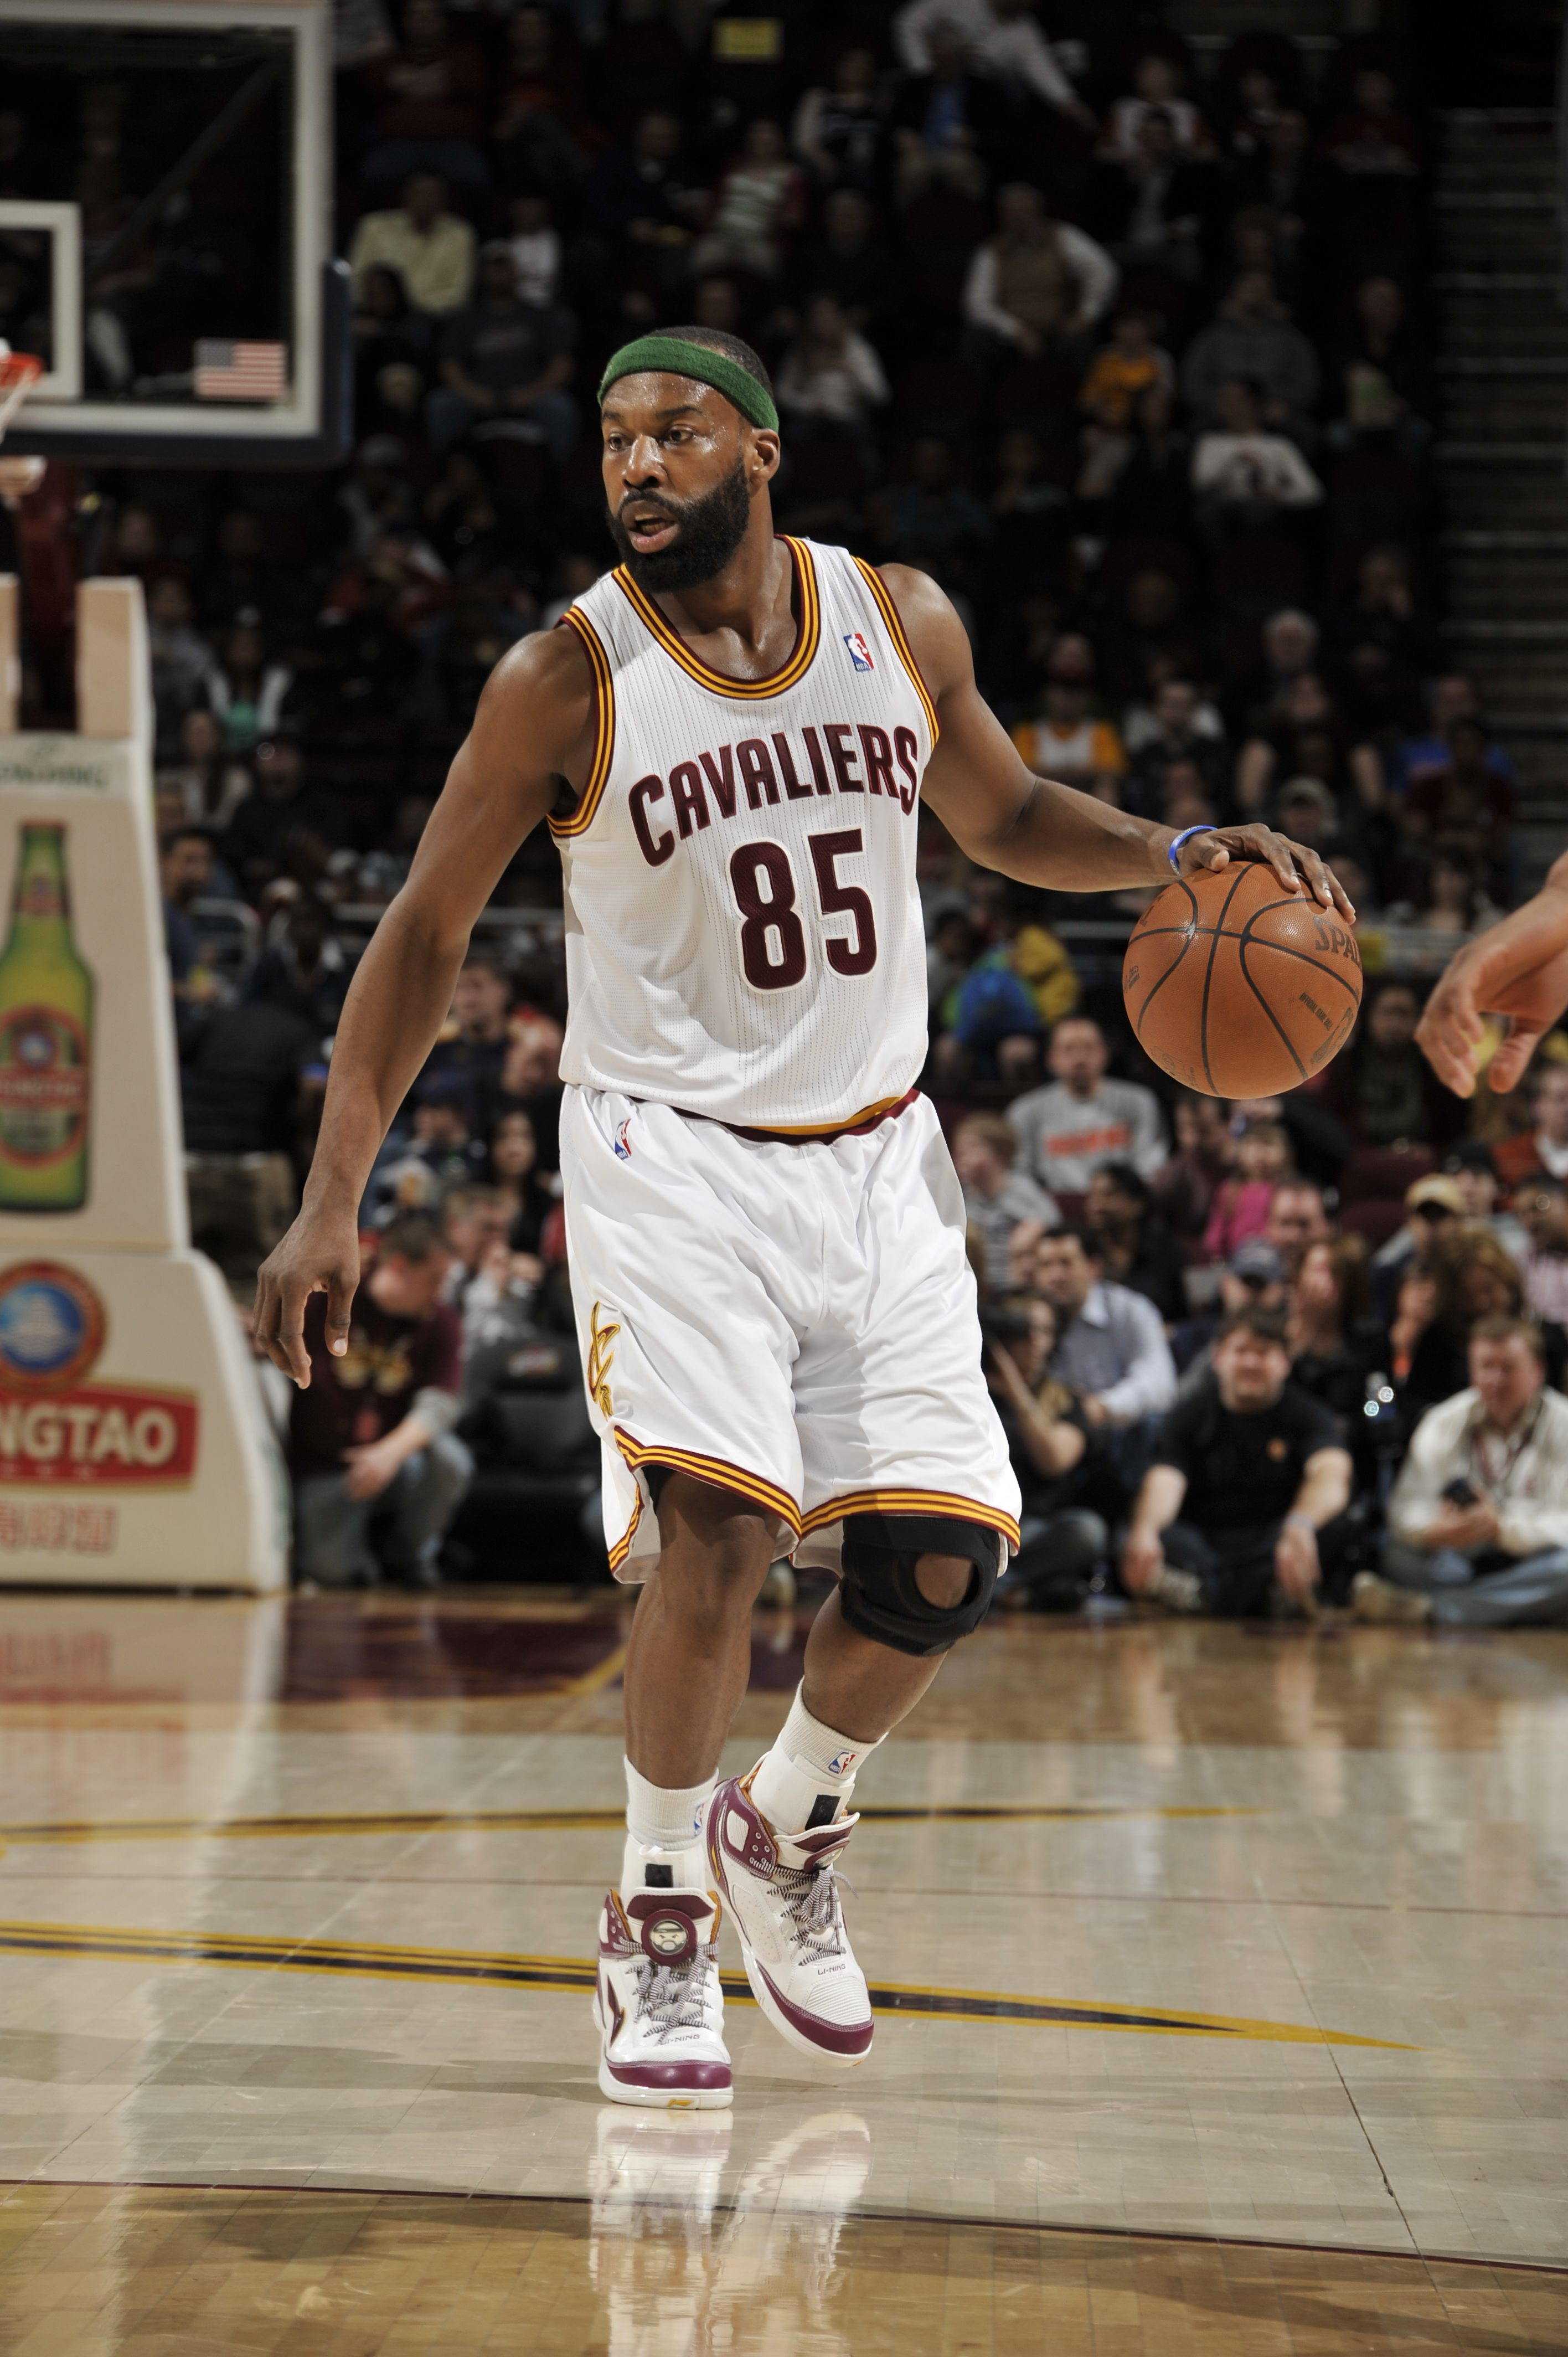 CLEVELAND, OH- APRIL 5: Baron Davis #85 of the Cleveland Cavaliers  moves the ball against the Charlotte Bobcats at The Quicken Loans Arena on April 5, 2011 in Cleveland, Ohio. (Photo by David Liam Kyle/NBAE via Getty Images)